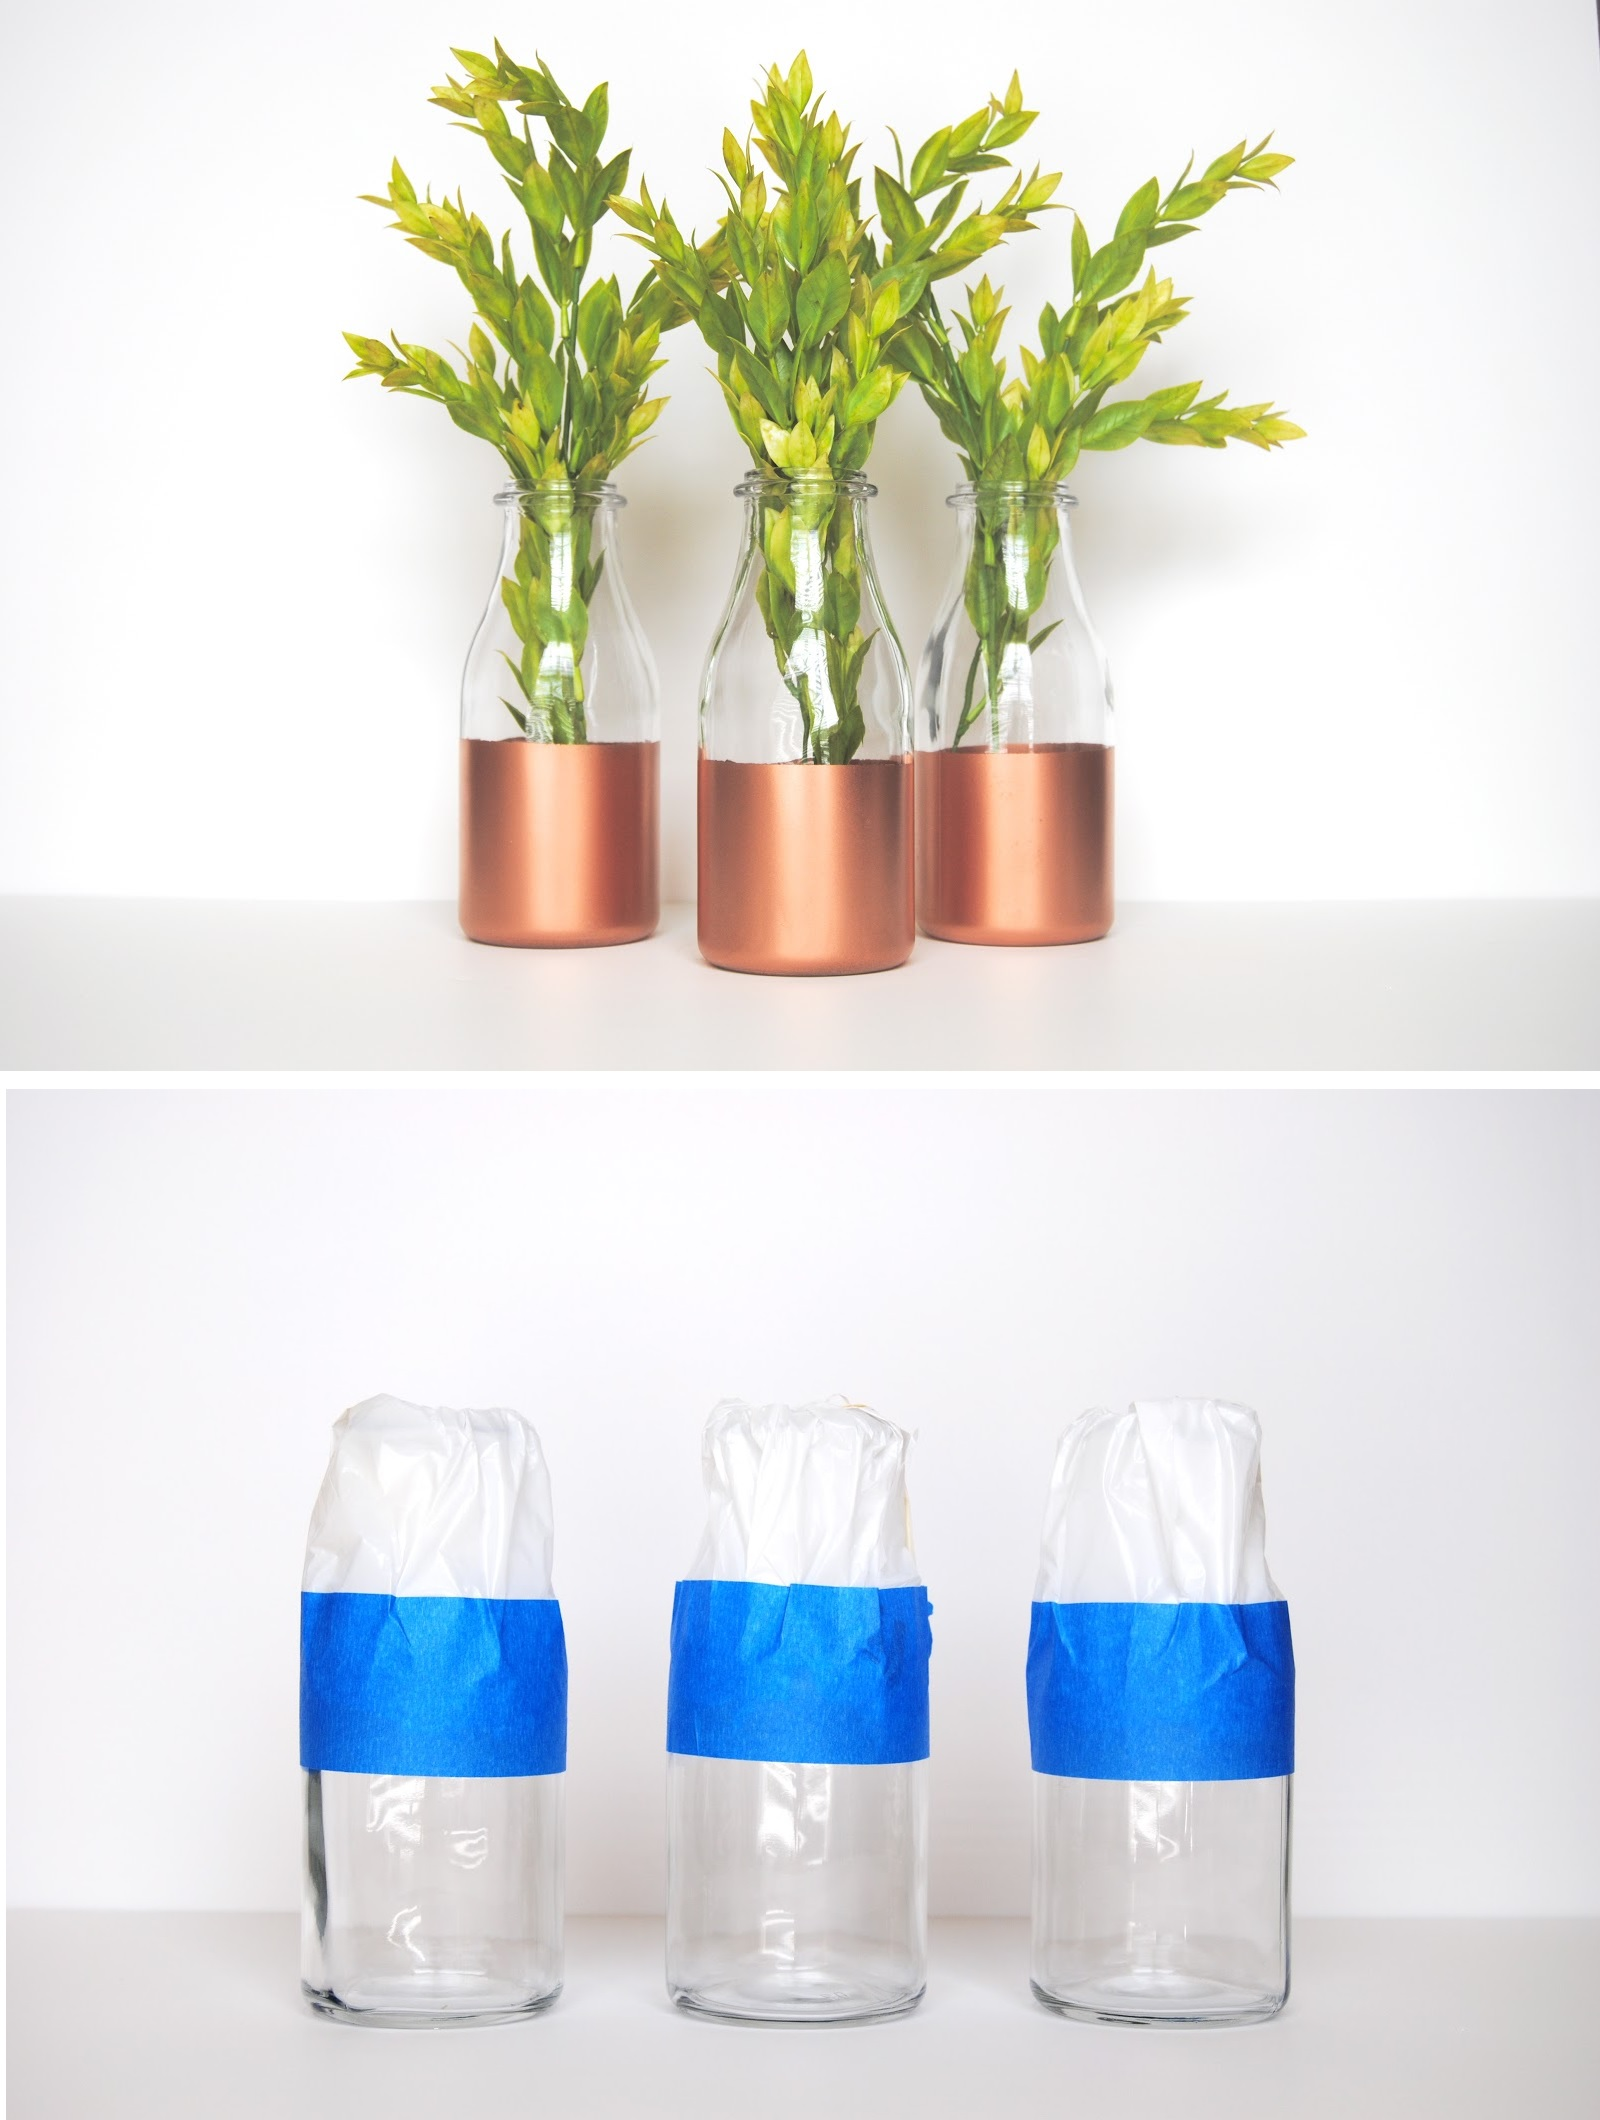 Bottle copper spray bottles